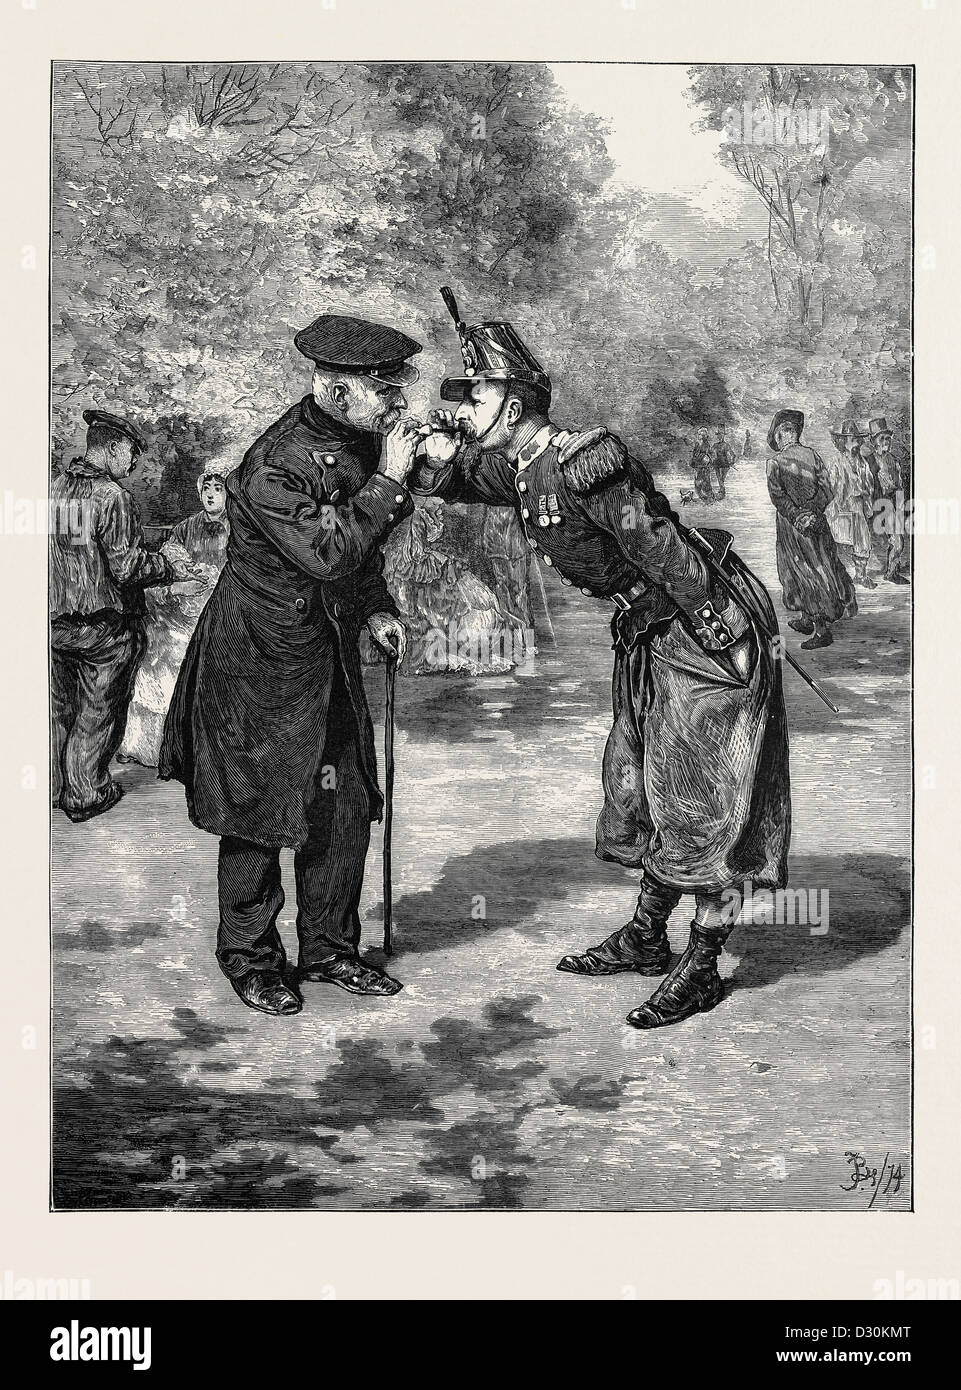 THE PIPING TIMES OF PEACE, FROM THE PICTURE BY F. BARNARD IN THE EXHIBITION OF THE ROYAL ACADEMY - Stock Image